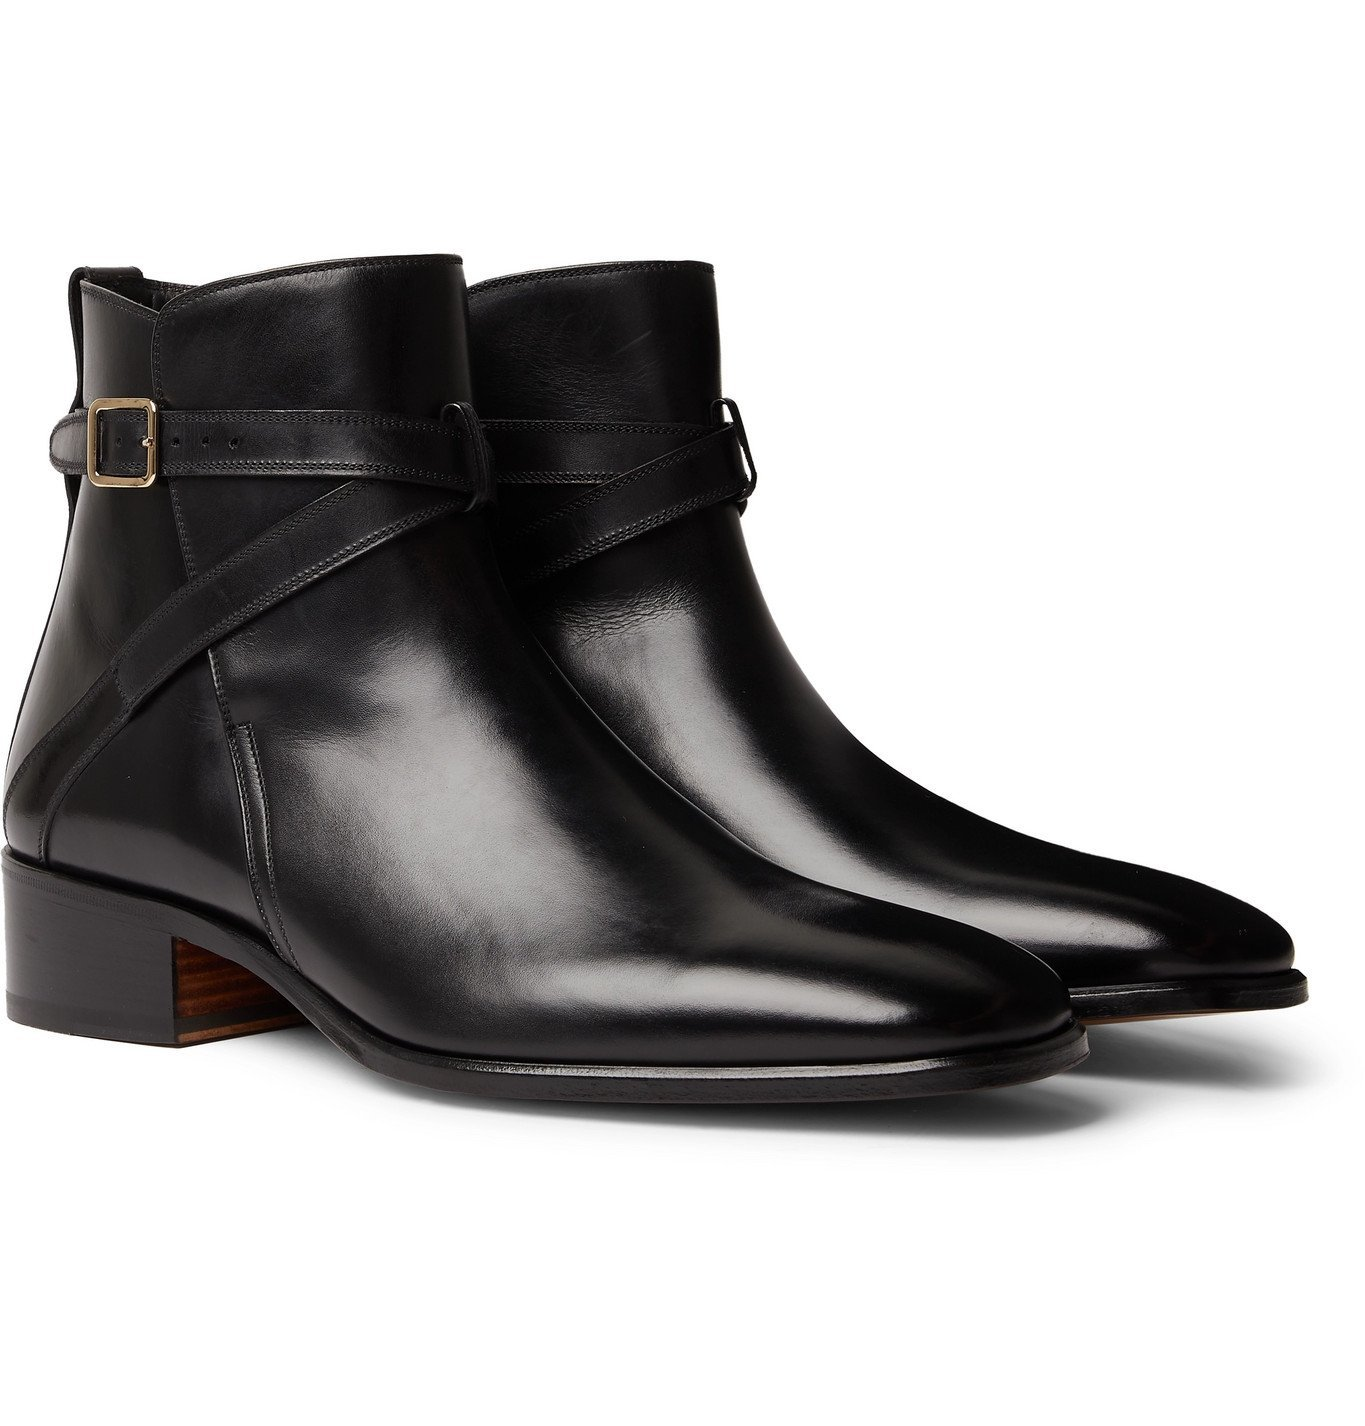 TOM FORD - Rochester Leather Chelsea Boots - Black